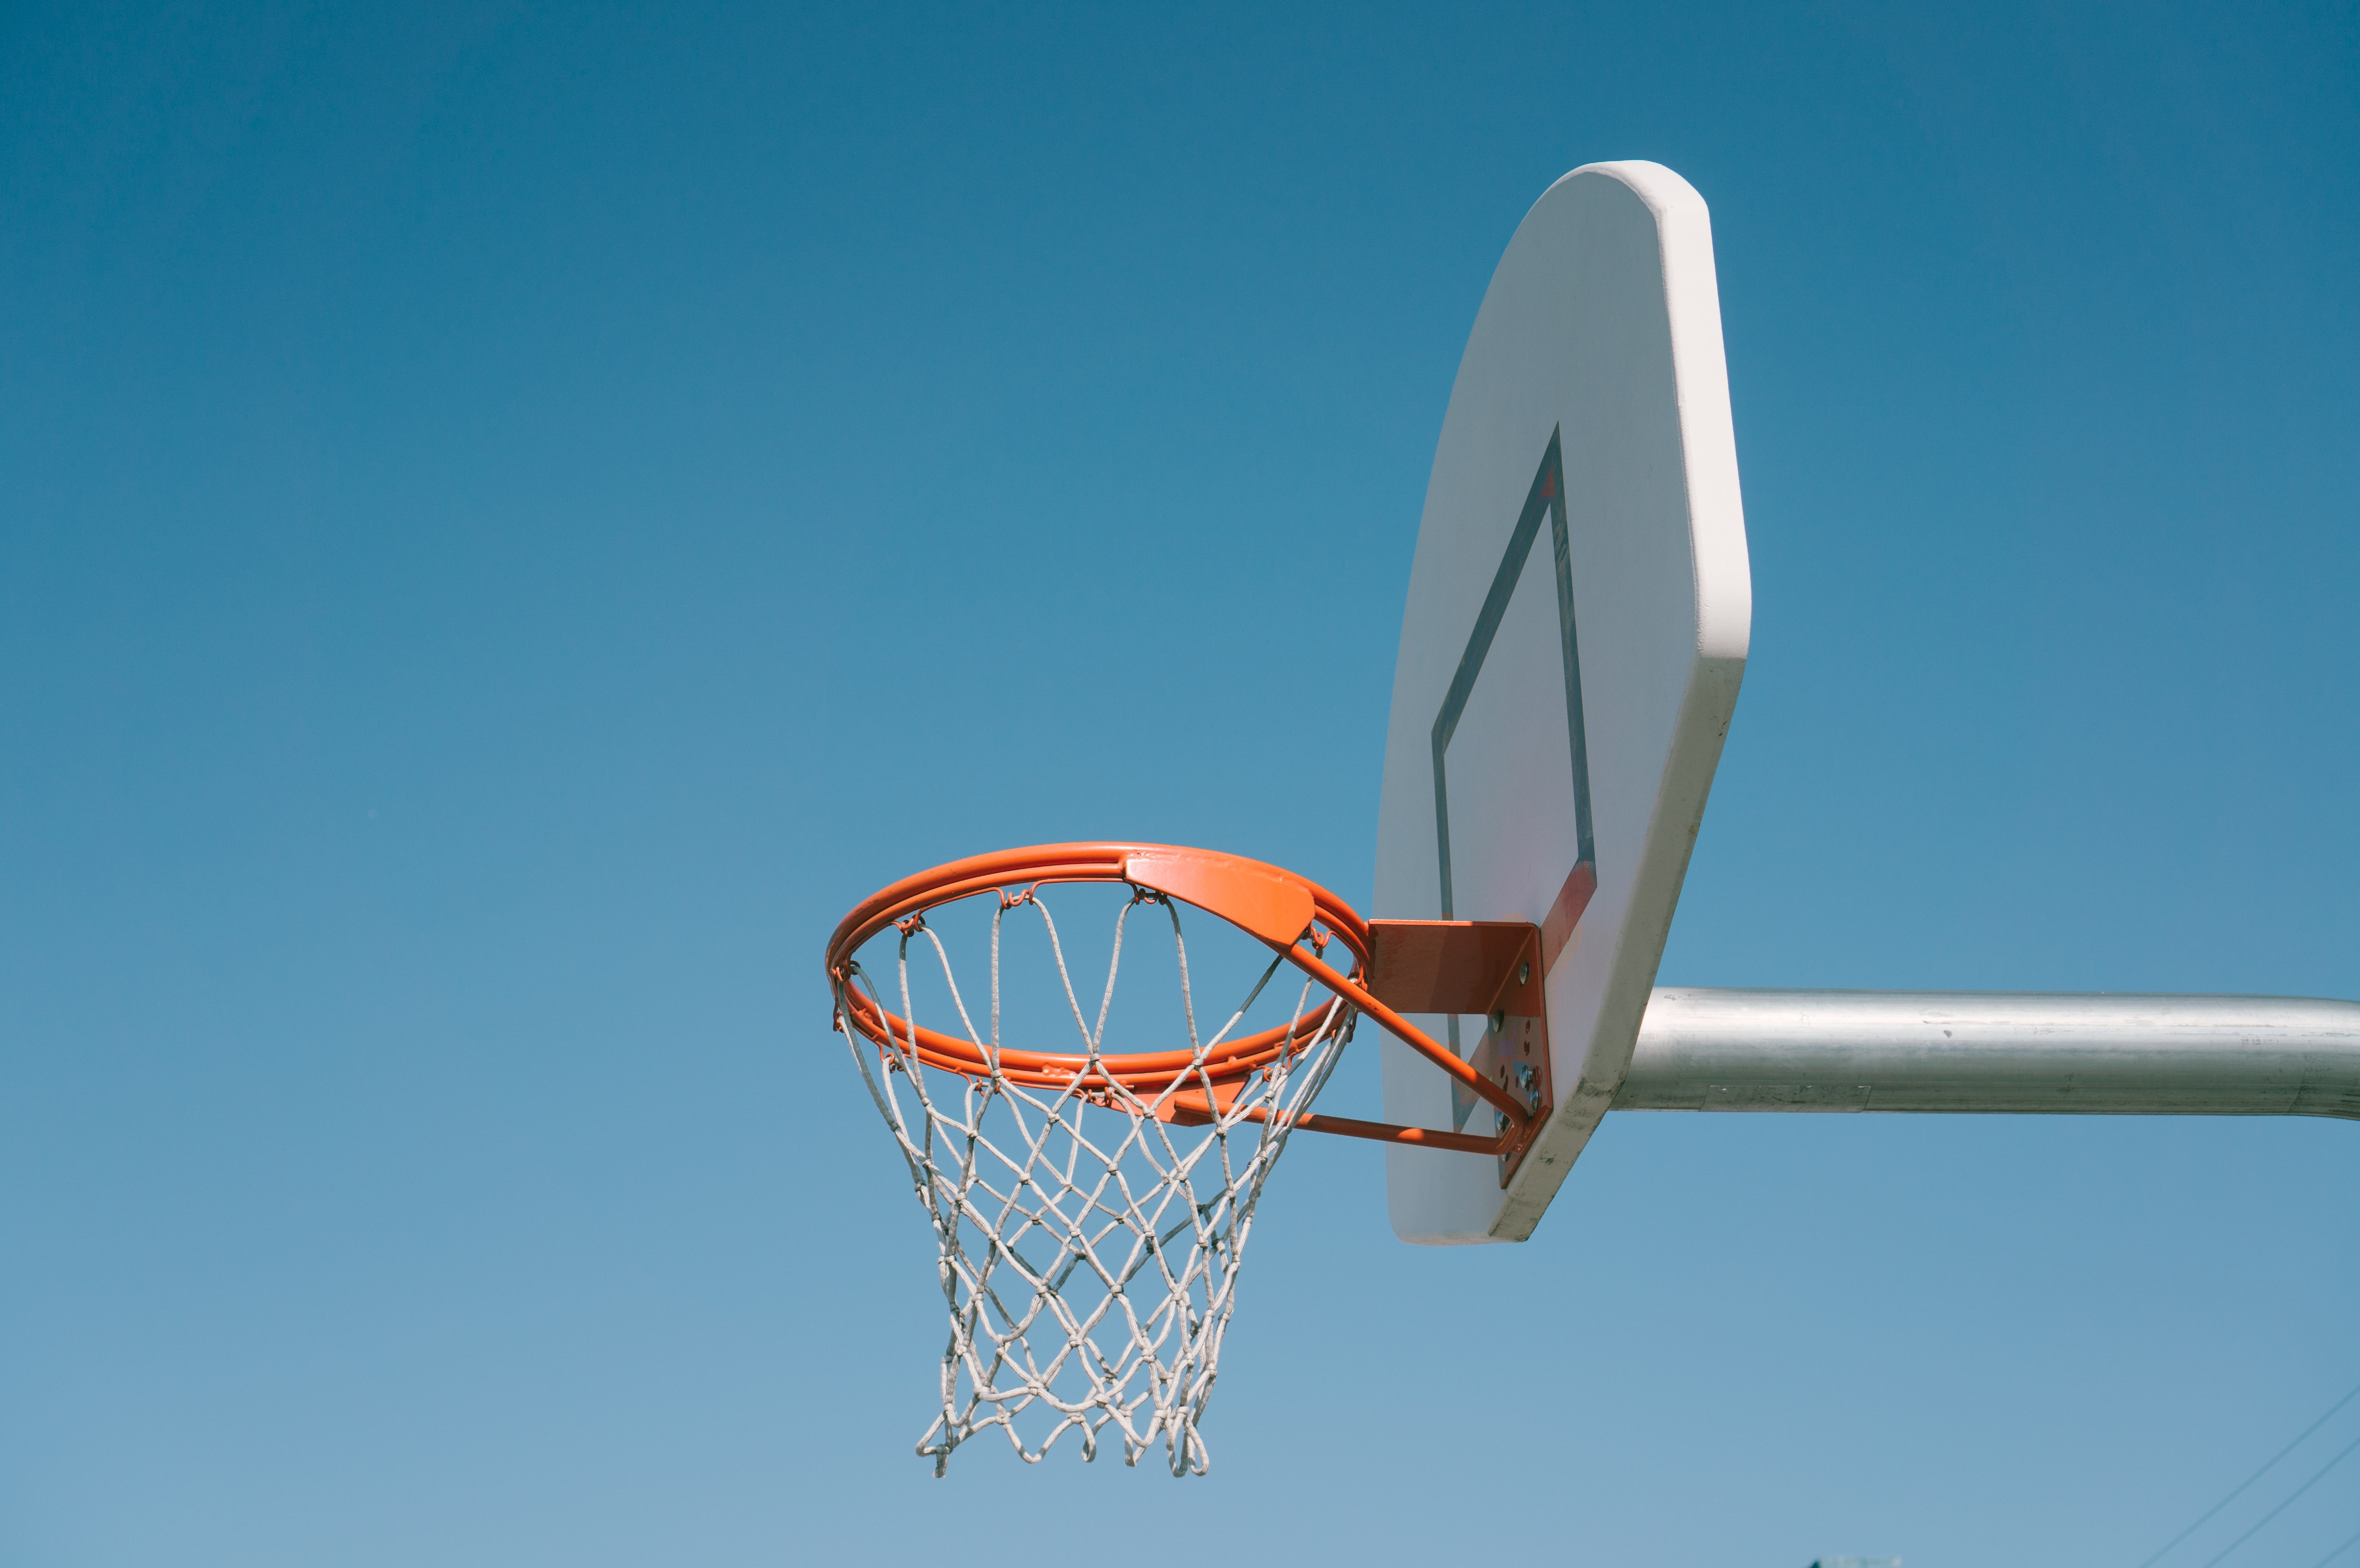 A basic photo of an outdoor basketball net, rim and backboard